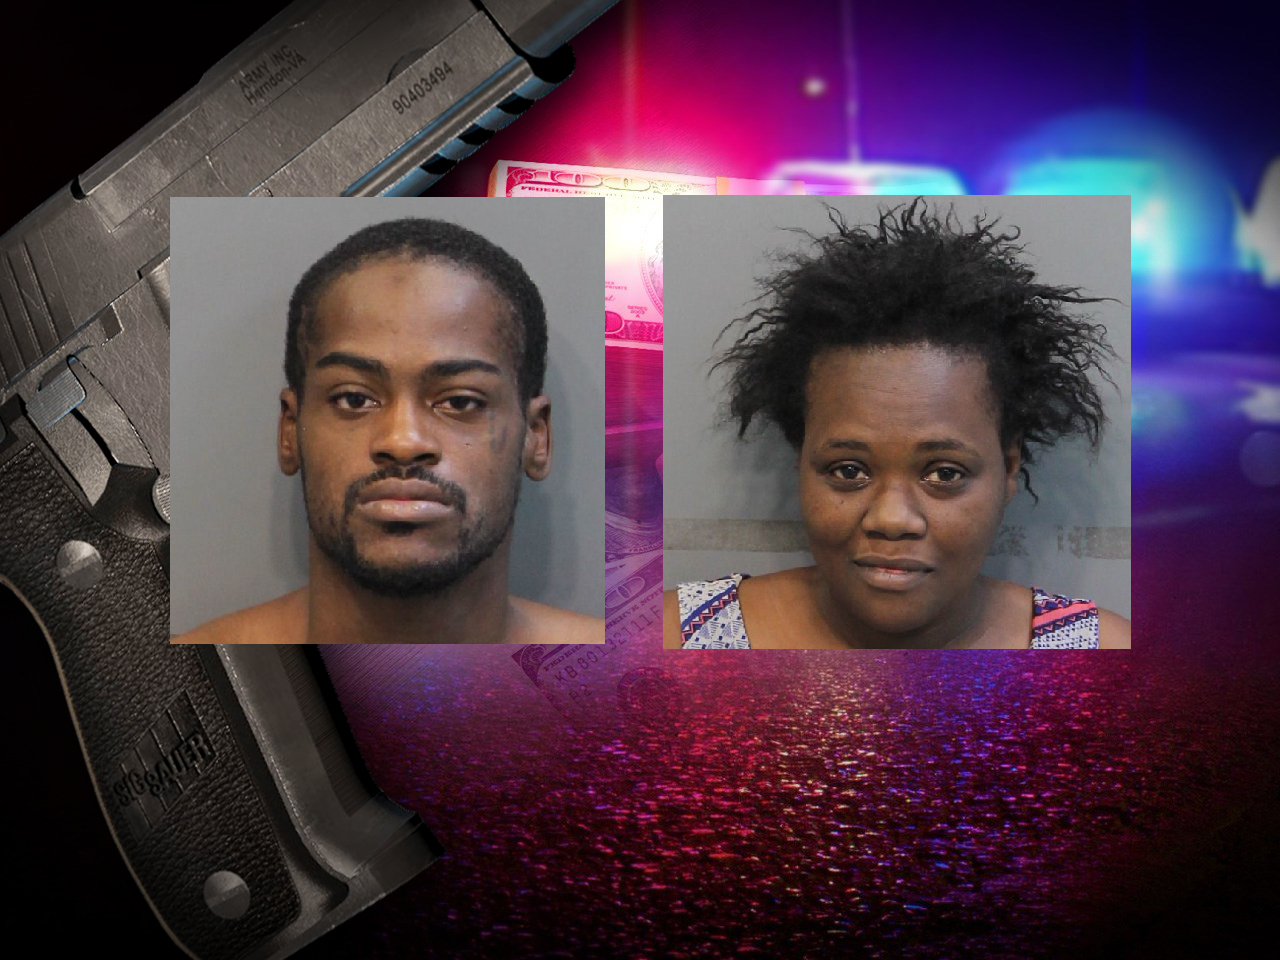 Christopher Ray Johnson and Lashanda Denise Cummings face multiple charges for aggravated robbery and theft over $1,000. They also face federal charges in a bank robbery. (Image: Hamilton County Sheriff's Office, MGN)